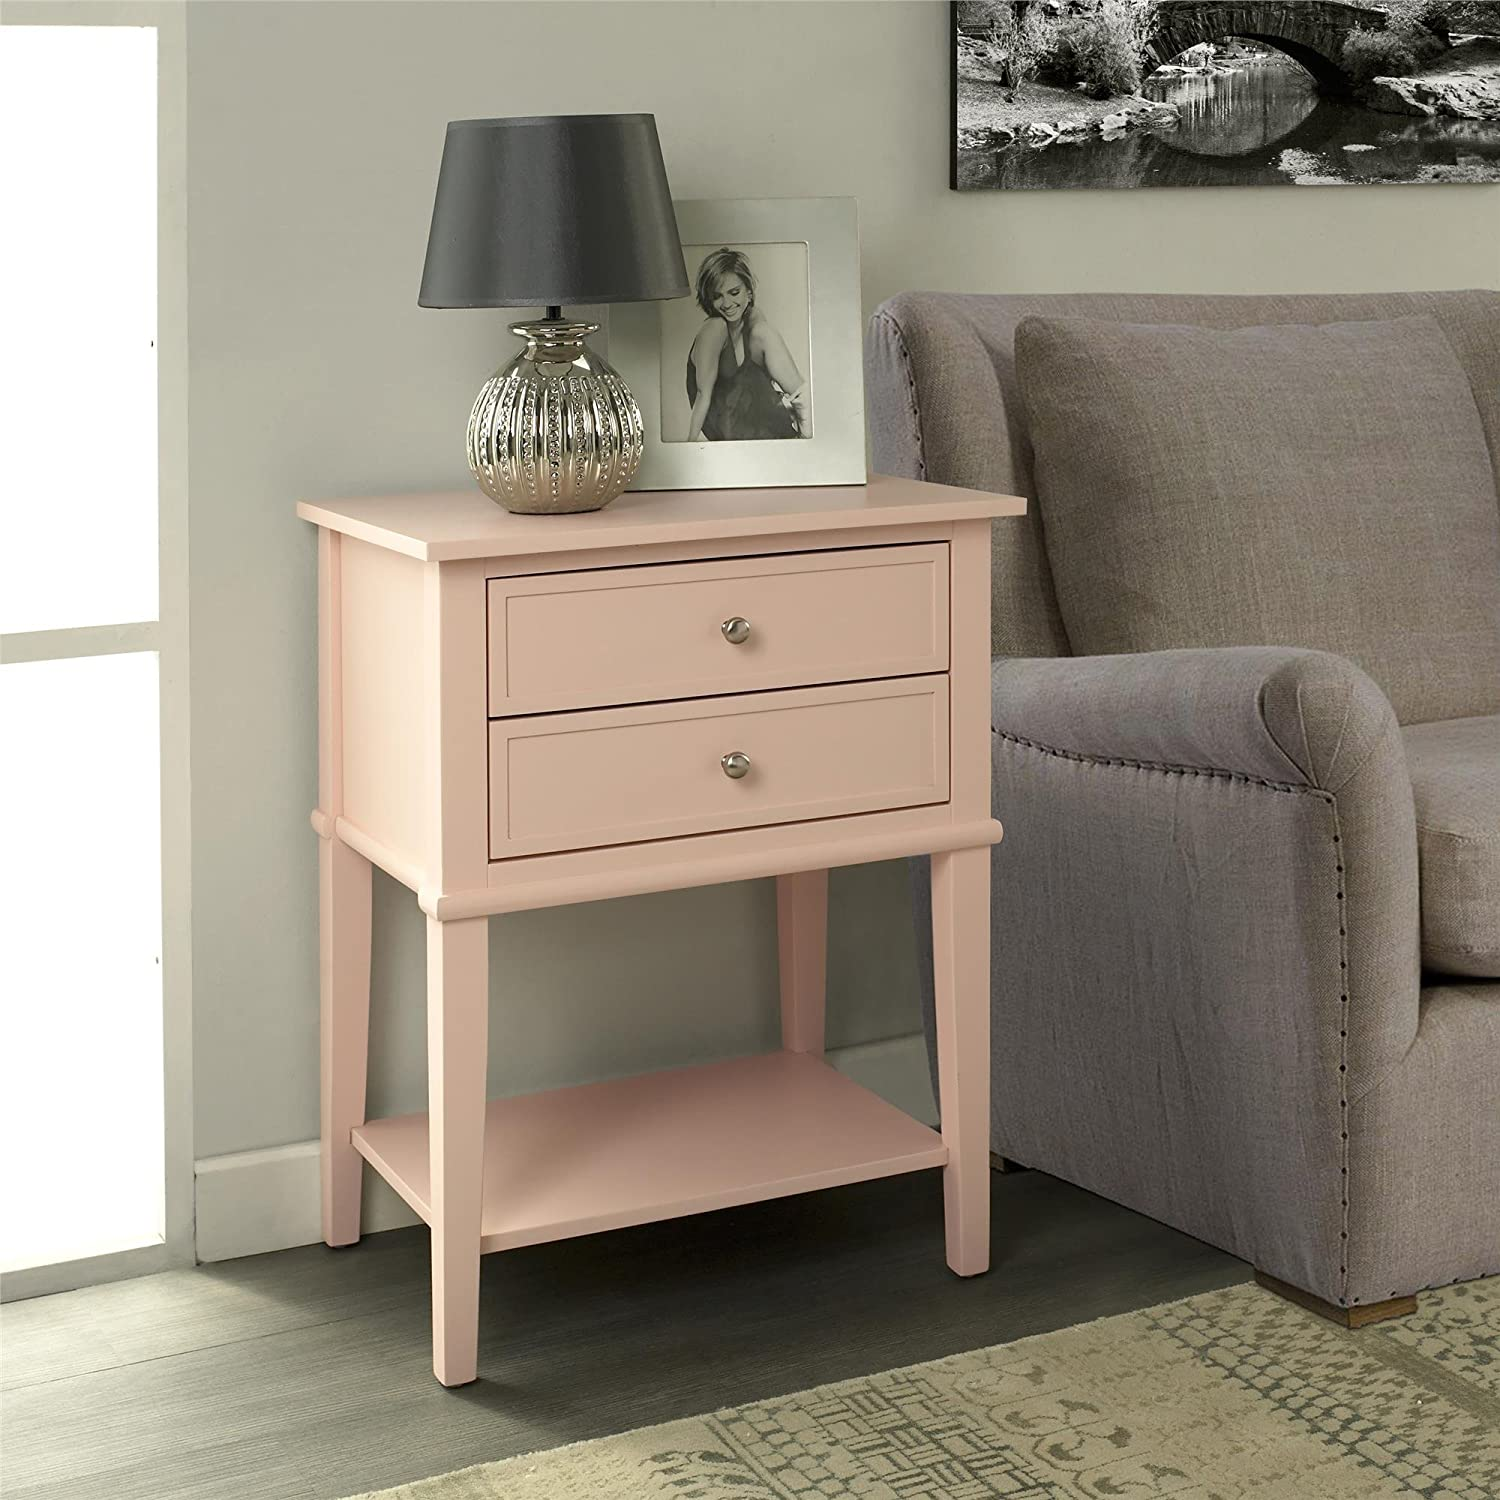 Gray Dorel Home Furnishings 5062196PCOM Ameriwood Home Franklin Accent Table with 2 Drawers